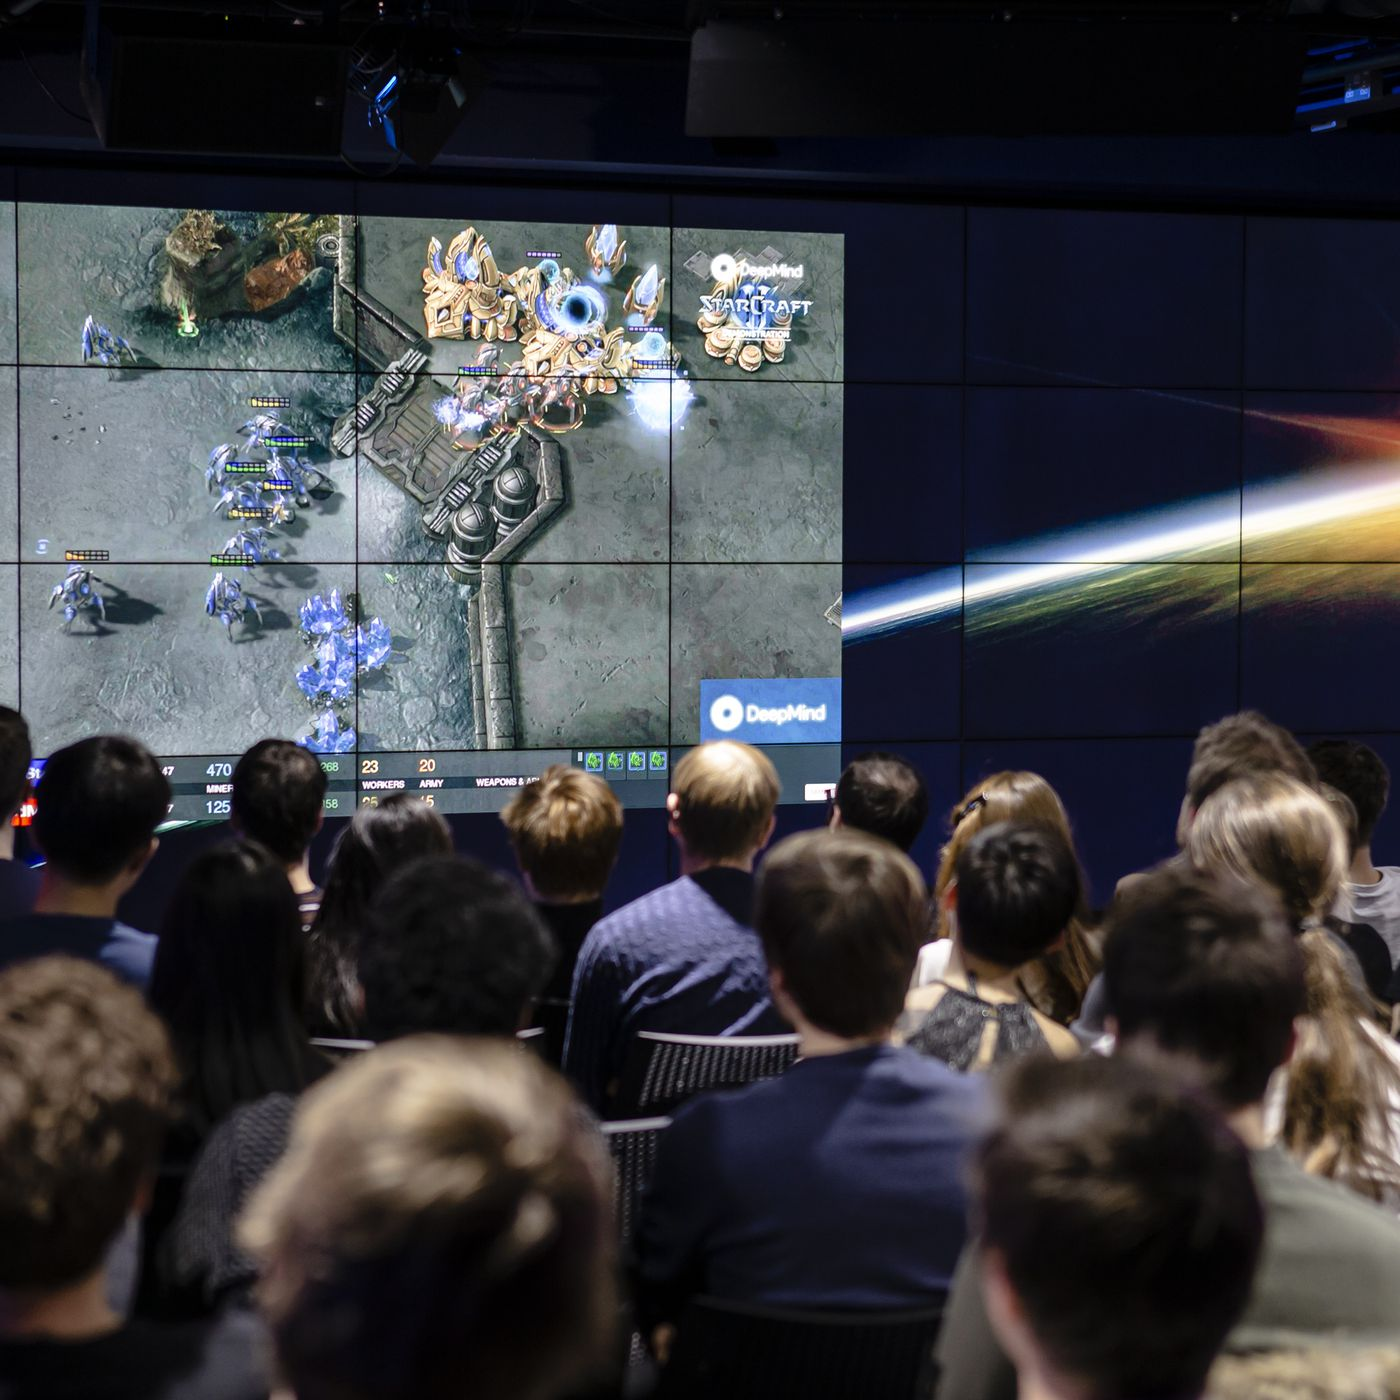 DeepMind's AI agents conquer human pros at StarCraft II - The Verge